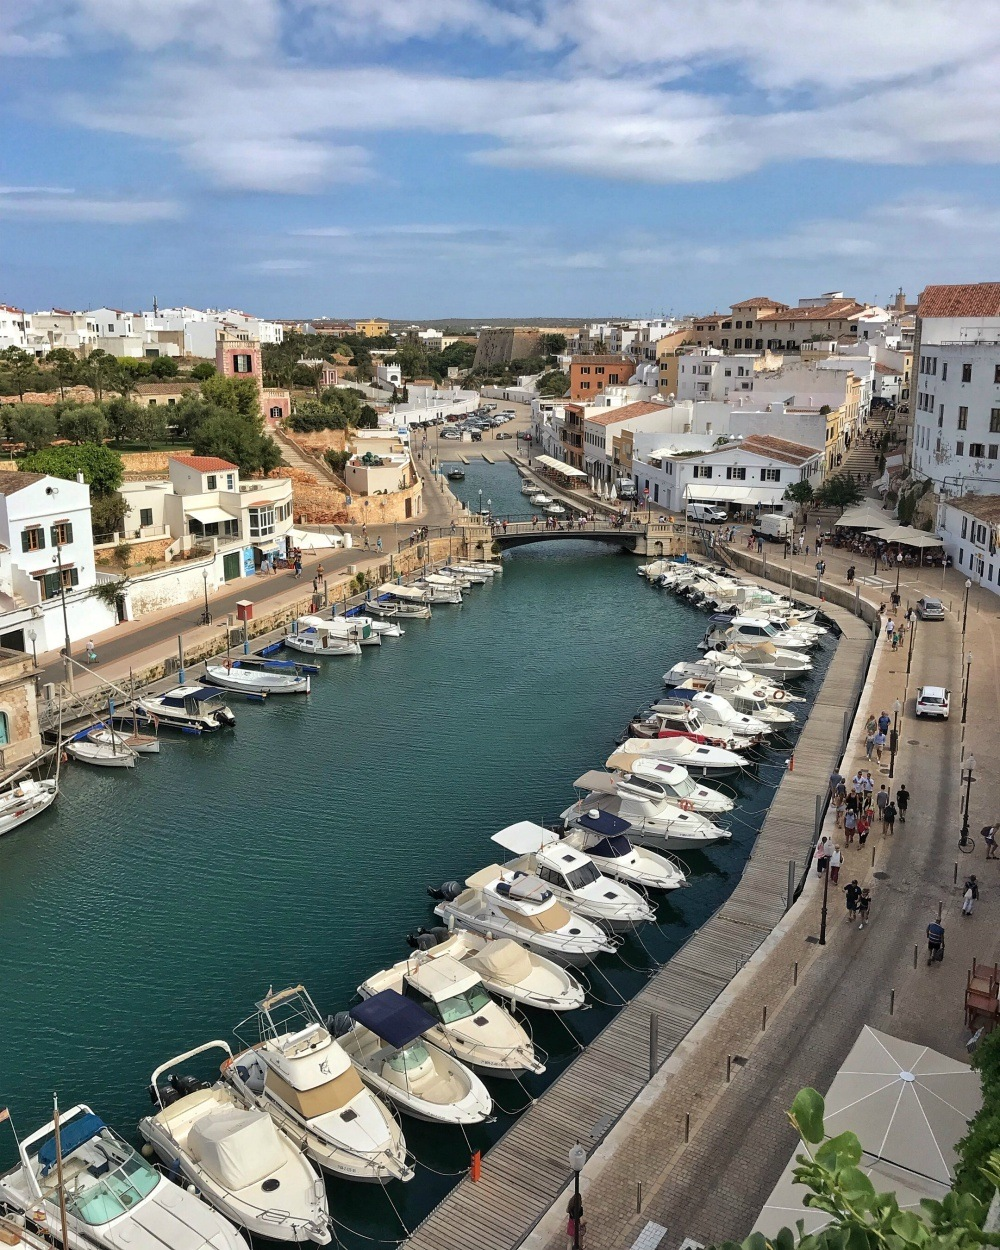 Ciutadella Port Menorca Spain Photo Heatheronhertravels.com